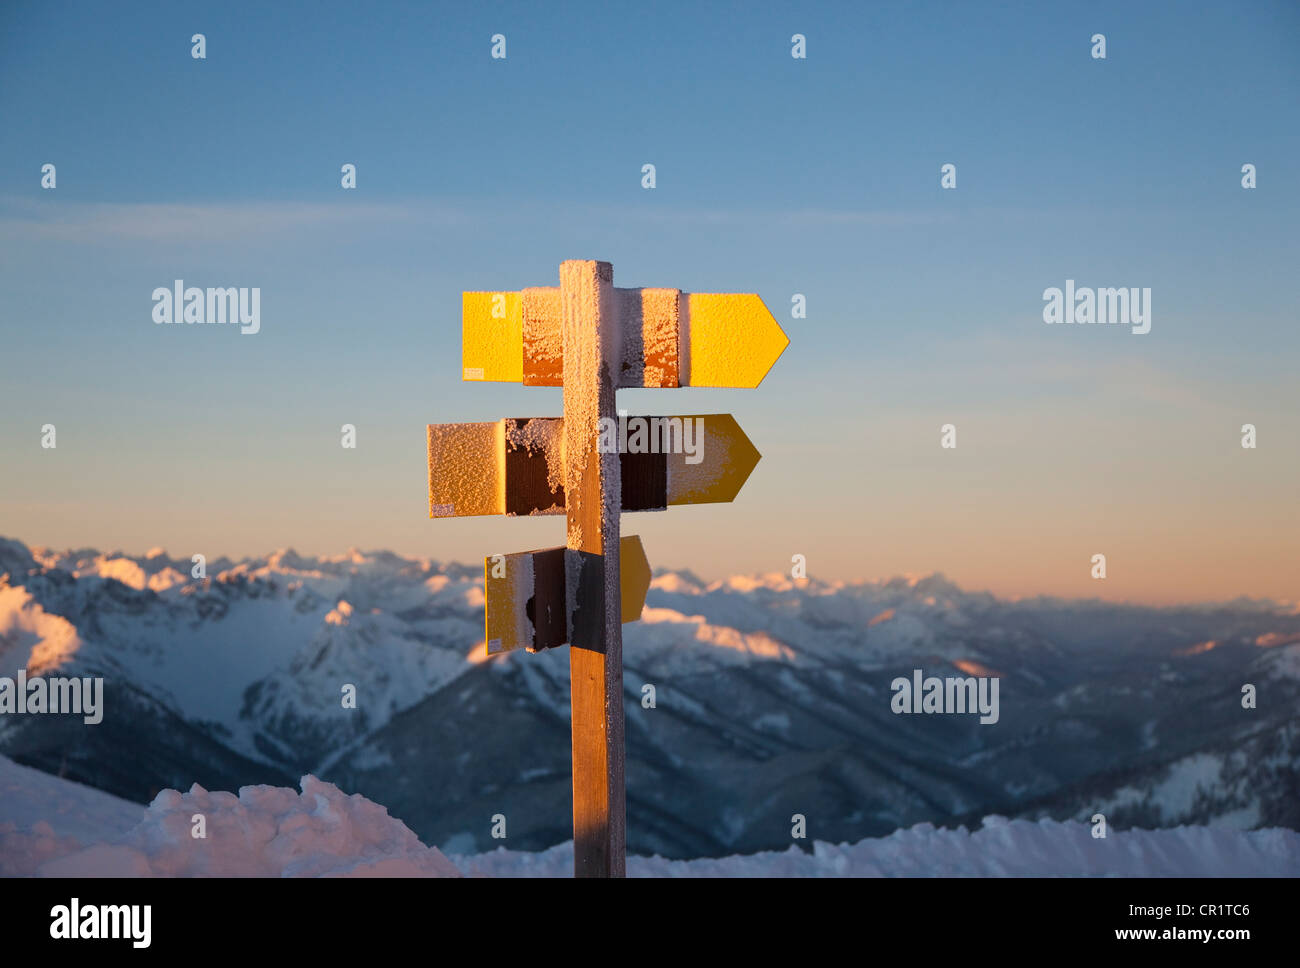 Close up of rural signposts in snow Photo Stock